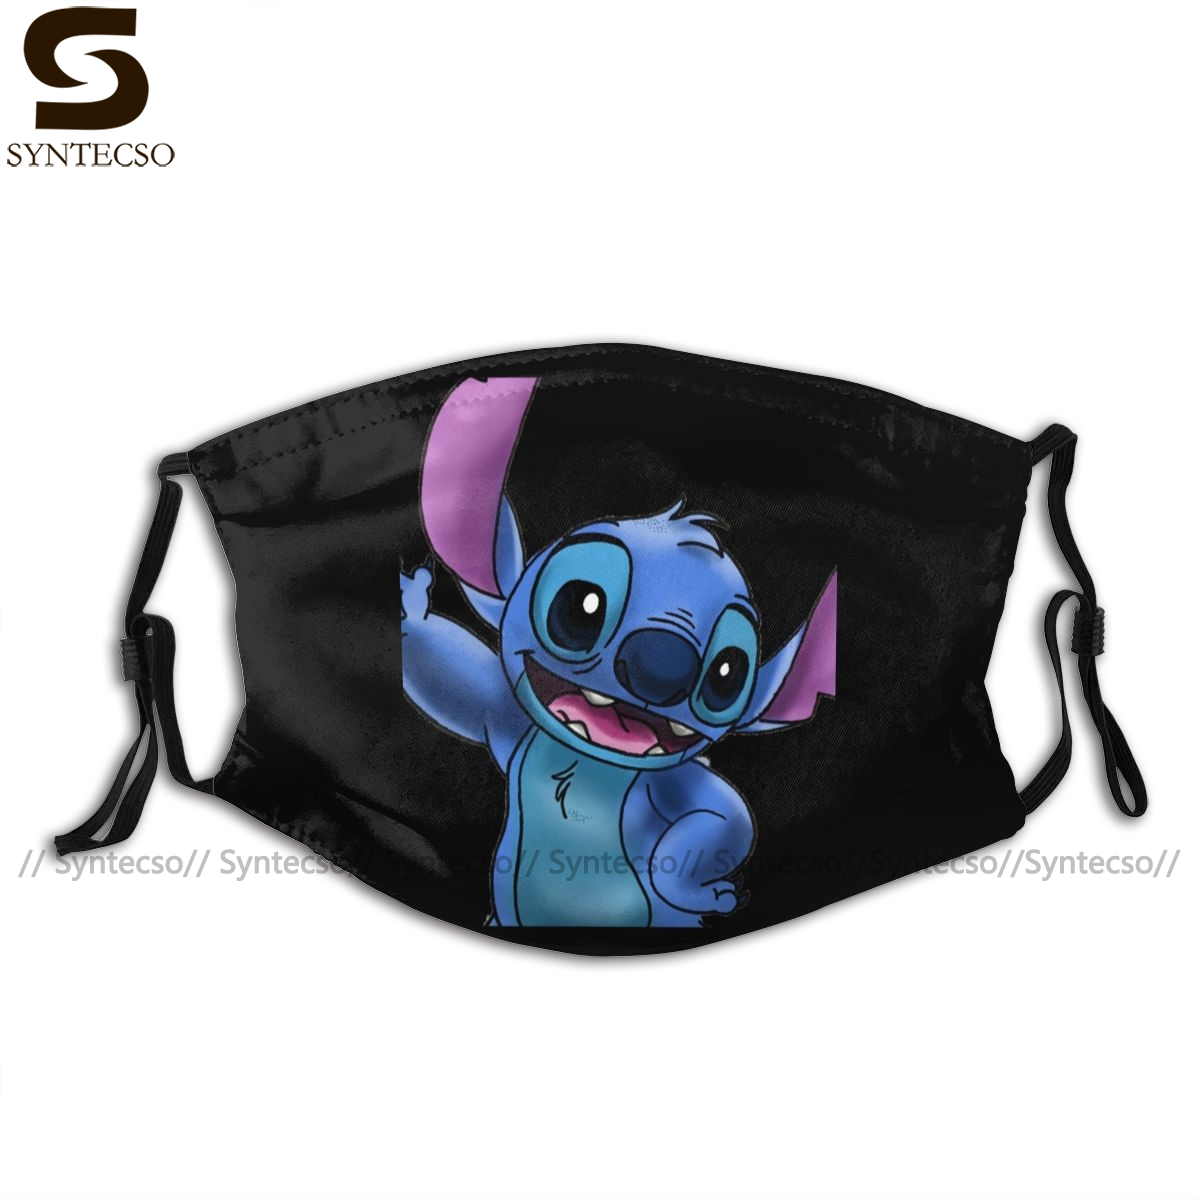 Stitch Lilo Mouth Face Mask Experiment Stitch Zoomed In Facial Mask Kawai Funny With 2 Filters For Adult